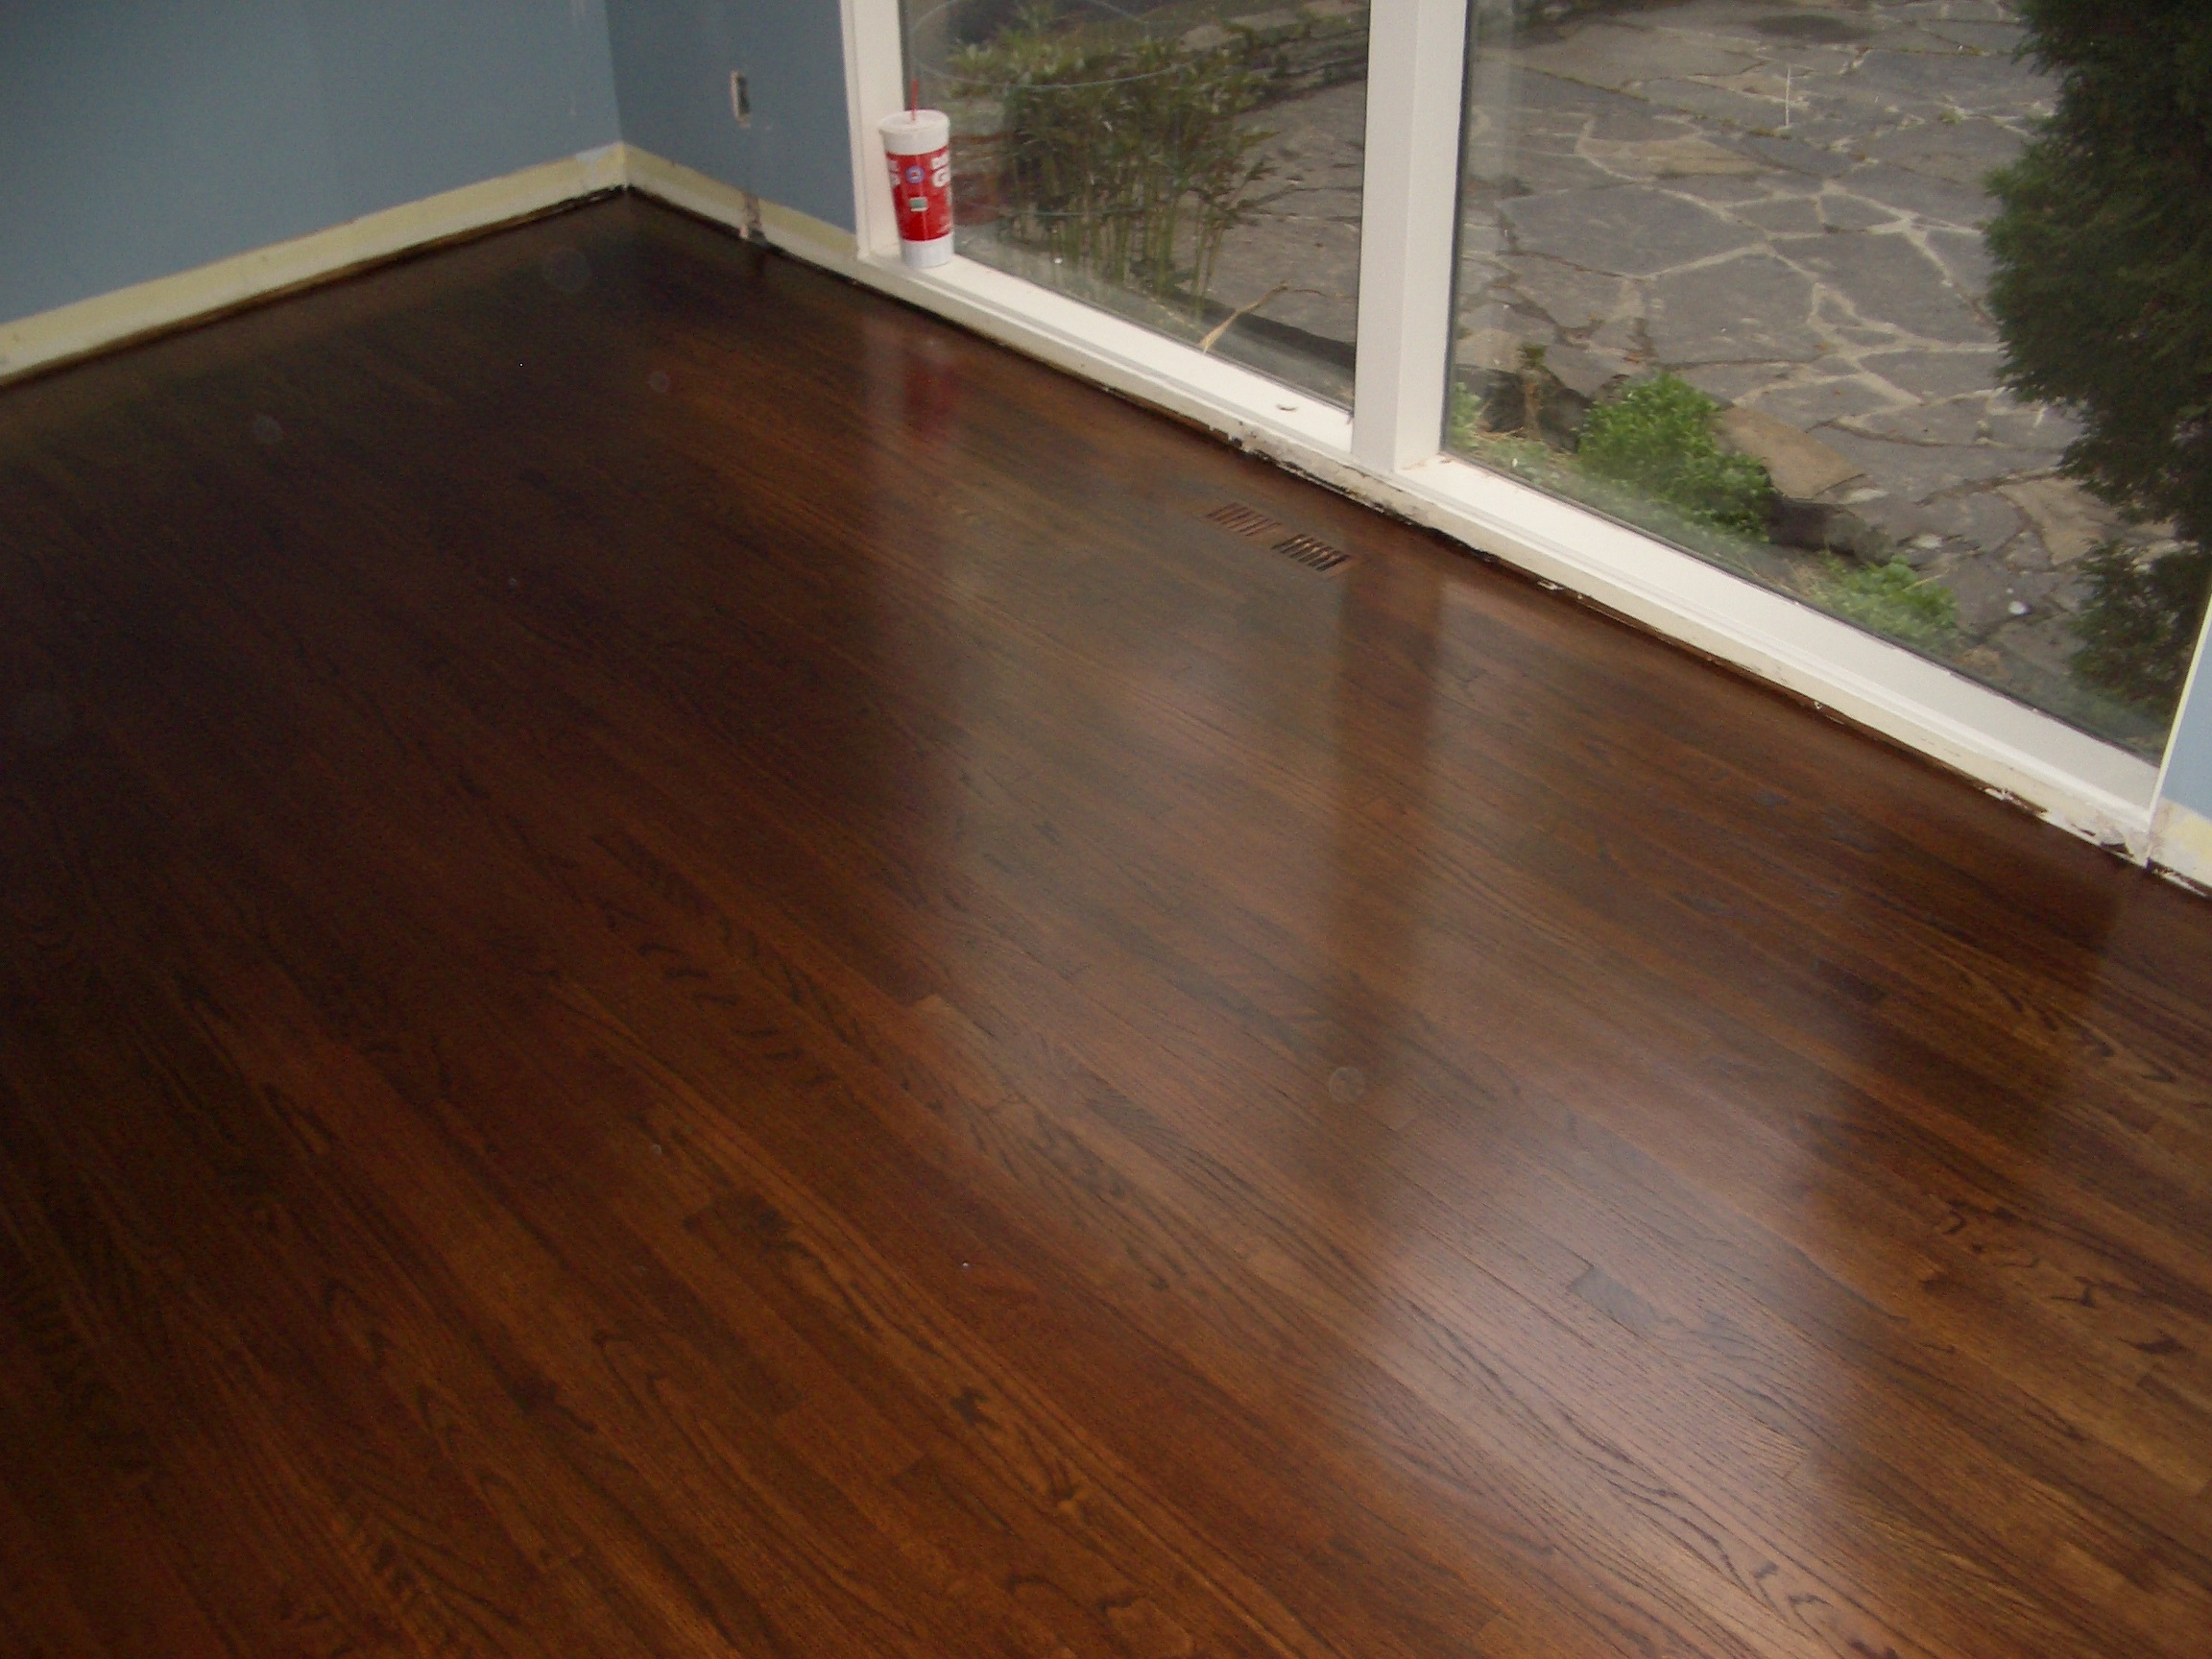 Custom Oak hardwood floor refinishing